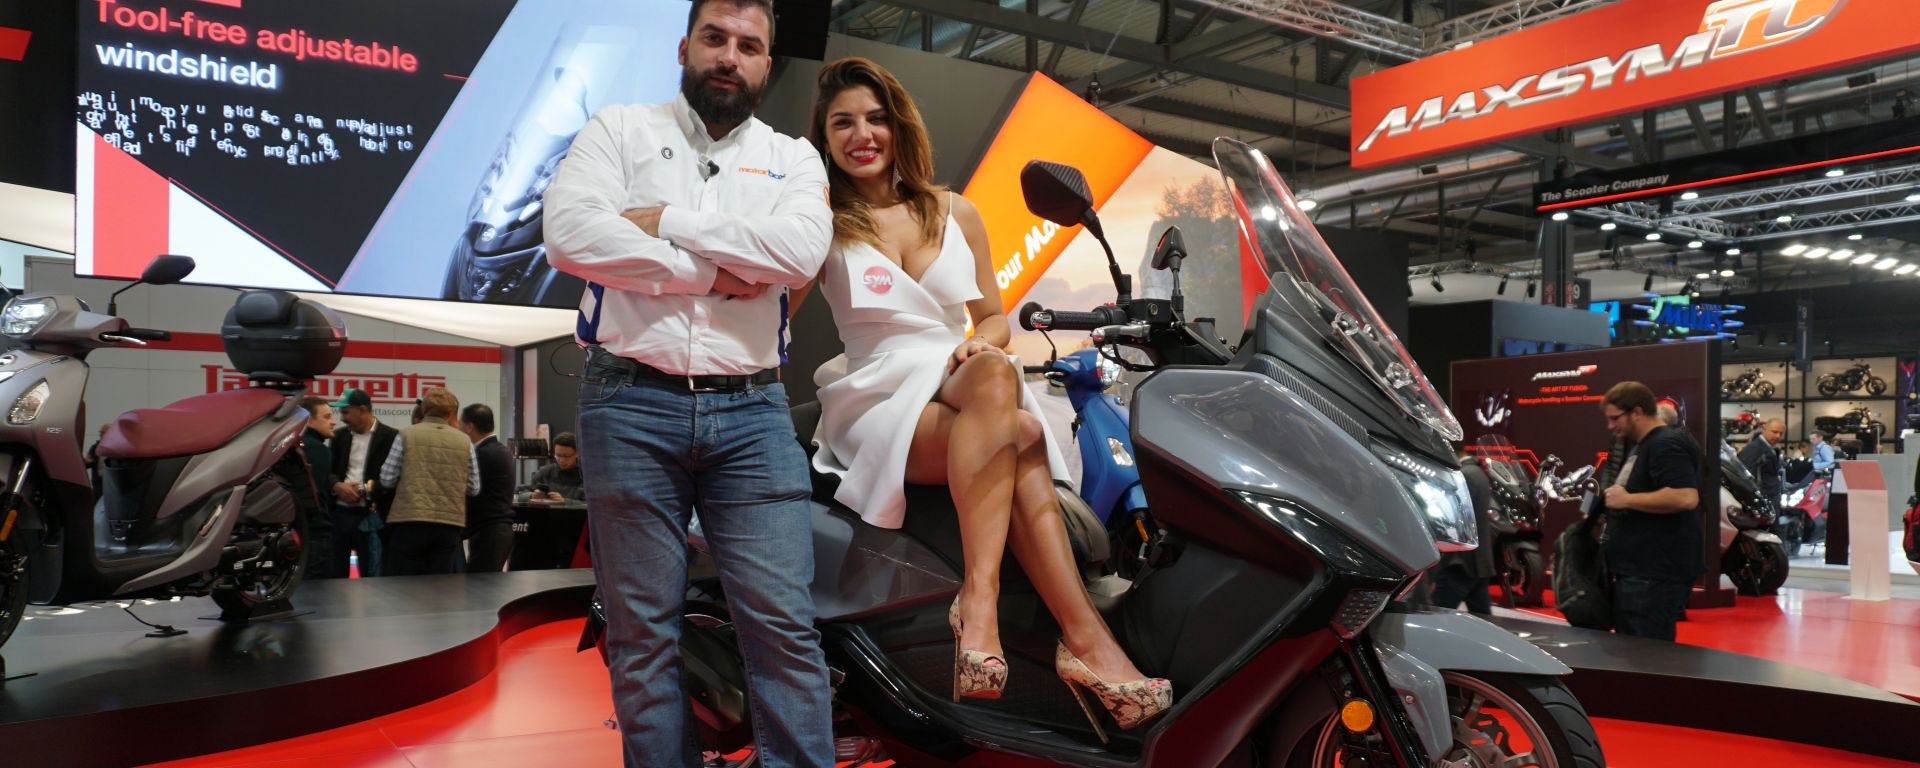 Come cambia il Sym Maxsym 2020 presentato a EICMA 2019. Video